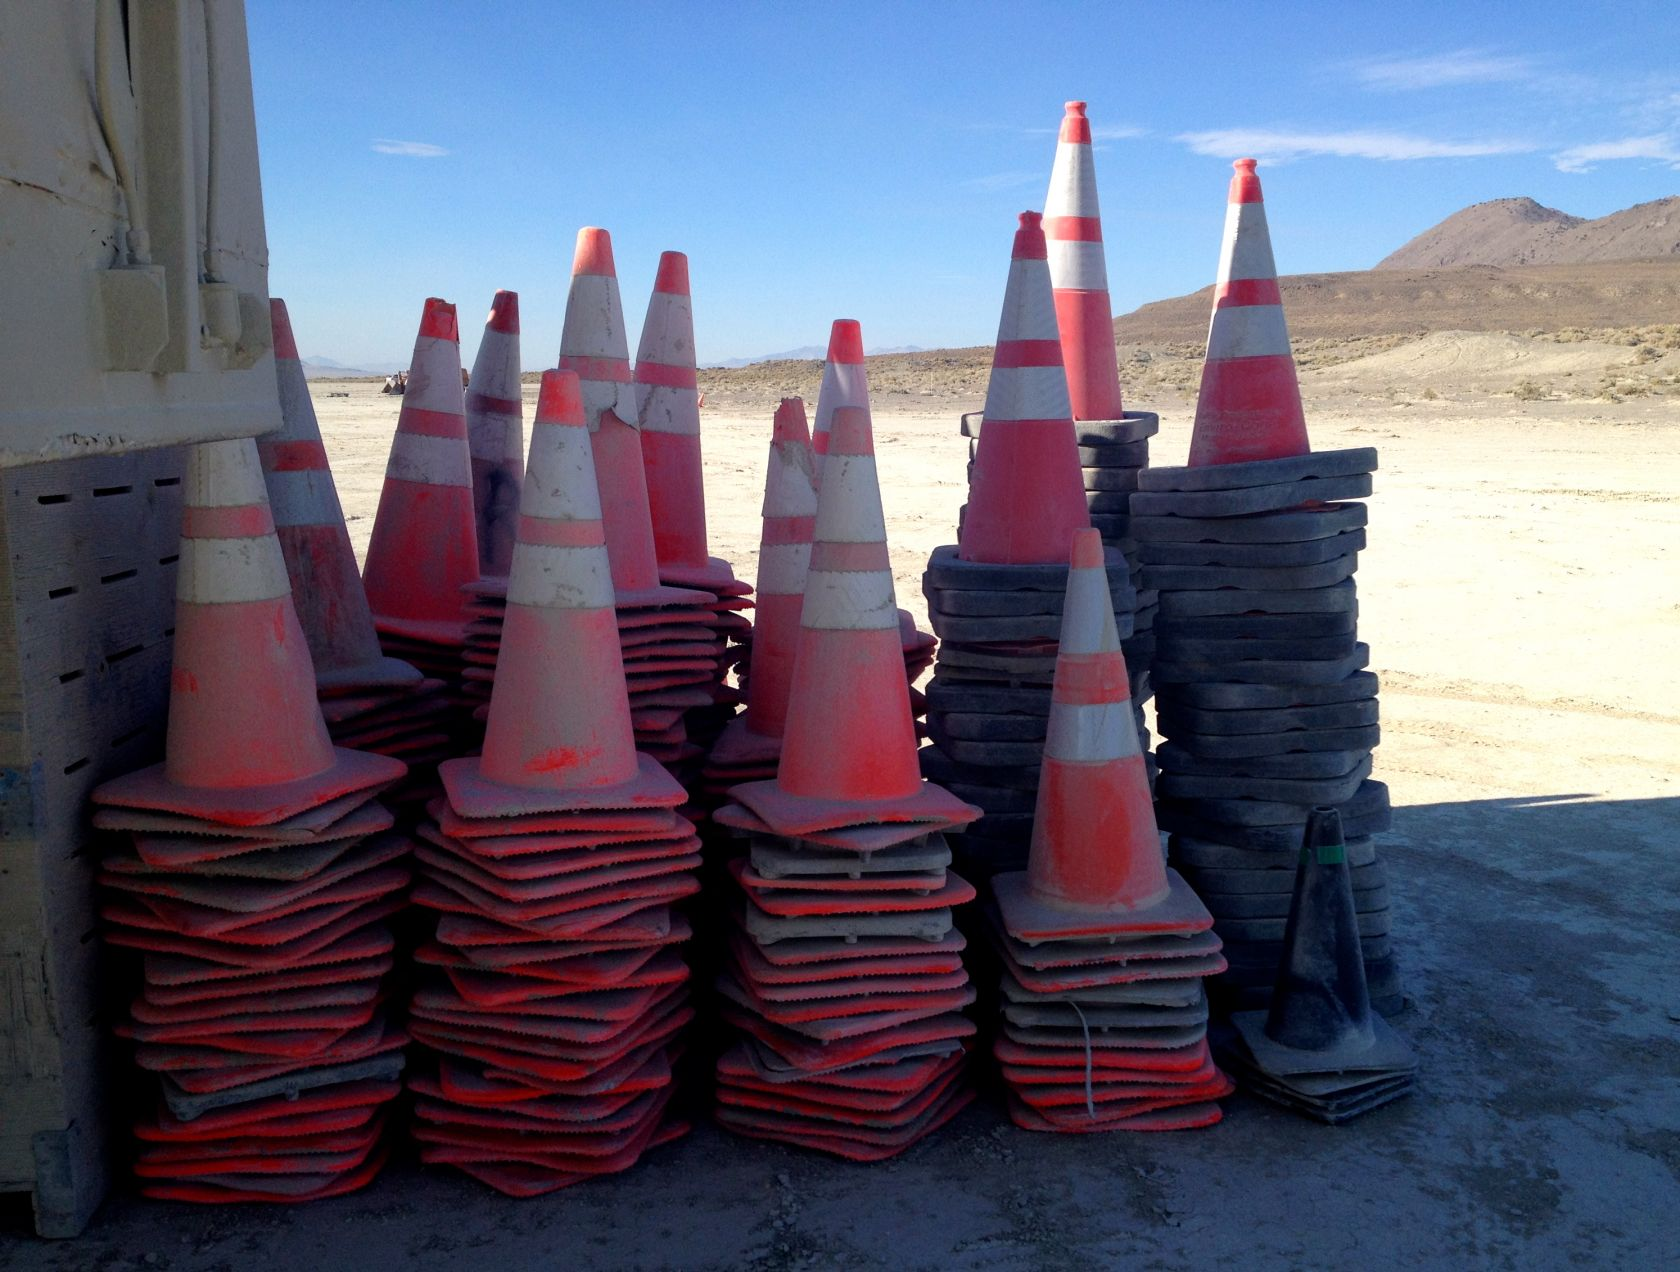 It's Resto, so the phrase DEATH TO ALL CONES rings out here and there. This is one graveyard for cones killed by Special Forces. They'll be reincarnated to mark more hot spots and dunes to bust.